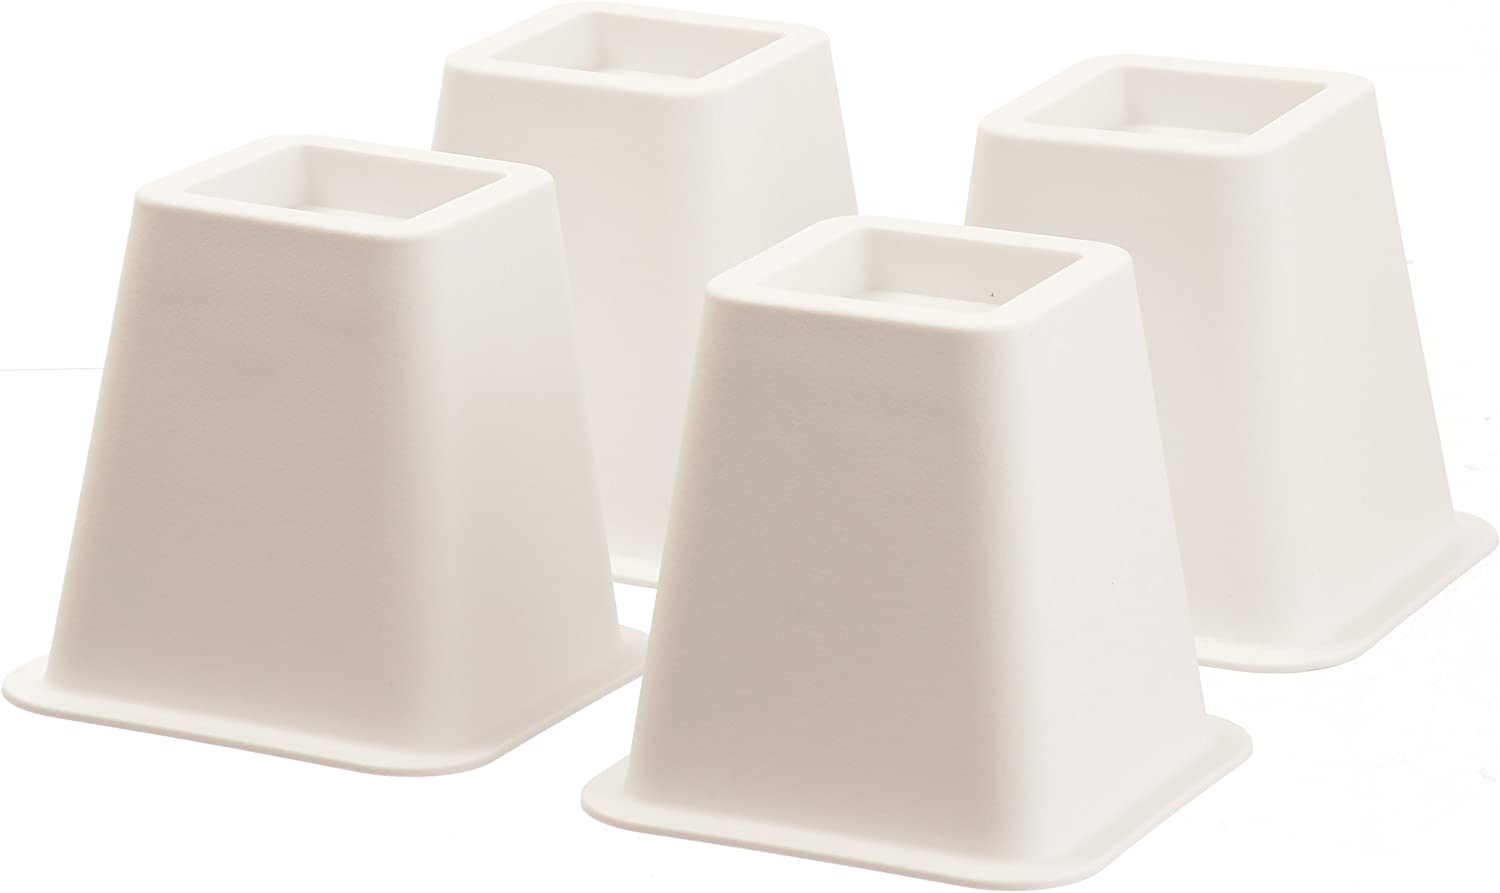 Home-it 5 to 6-inch Super Quality Black Bed risers, Helps You Storage Under The Bed 4-Pack (White)